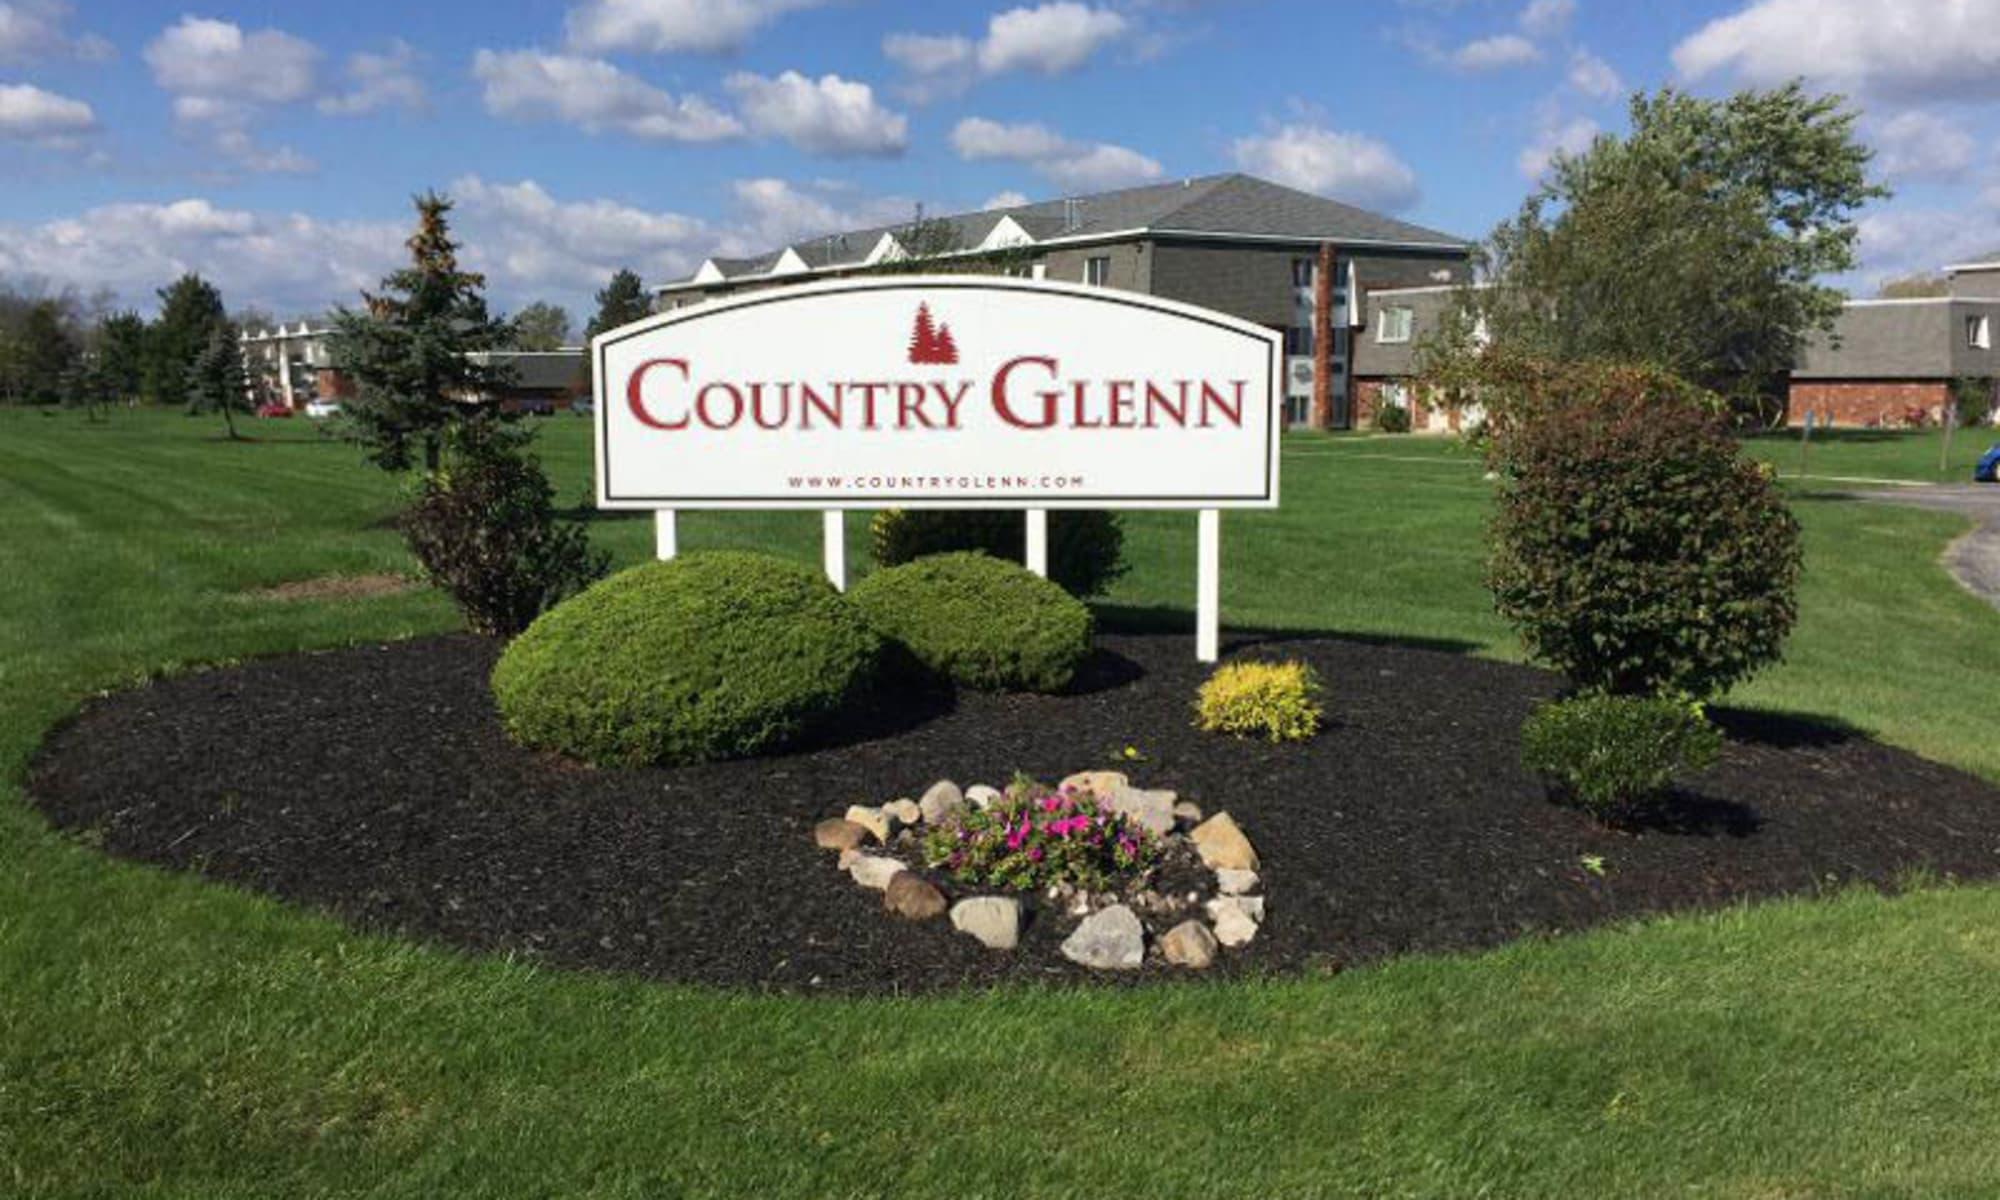 Country Glenn Apartments in Grand Island, New York